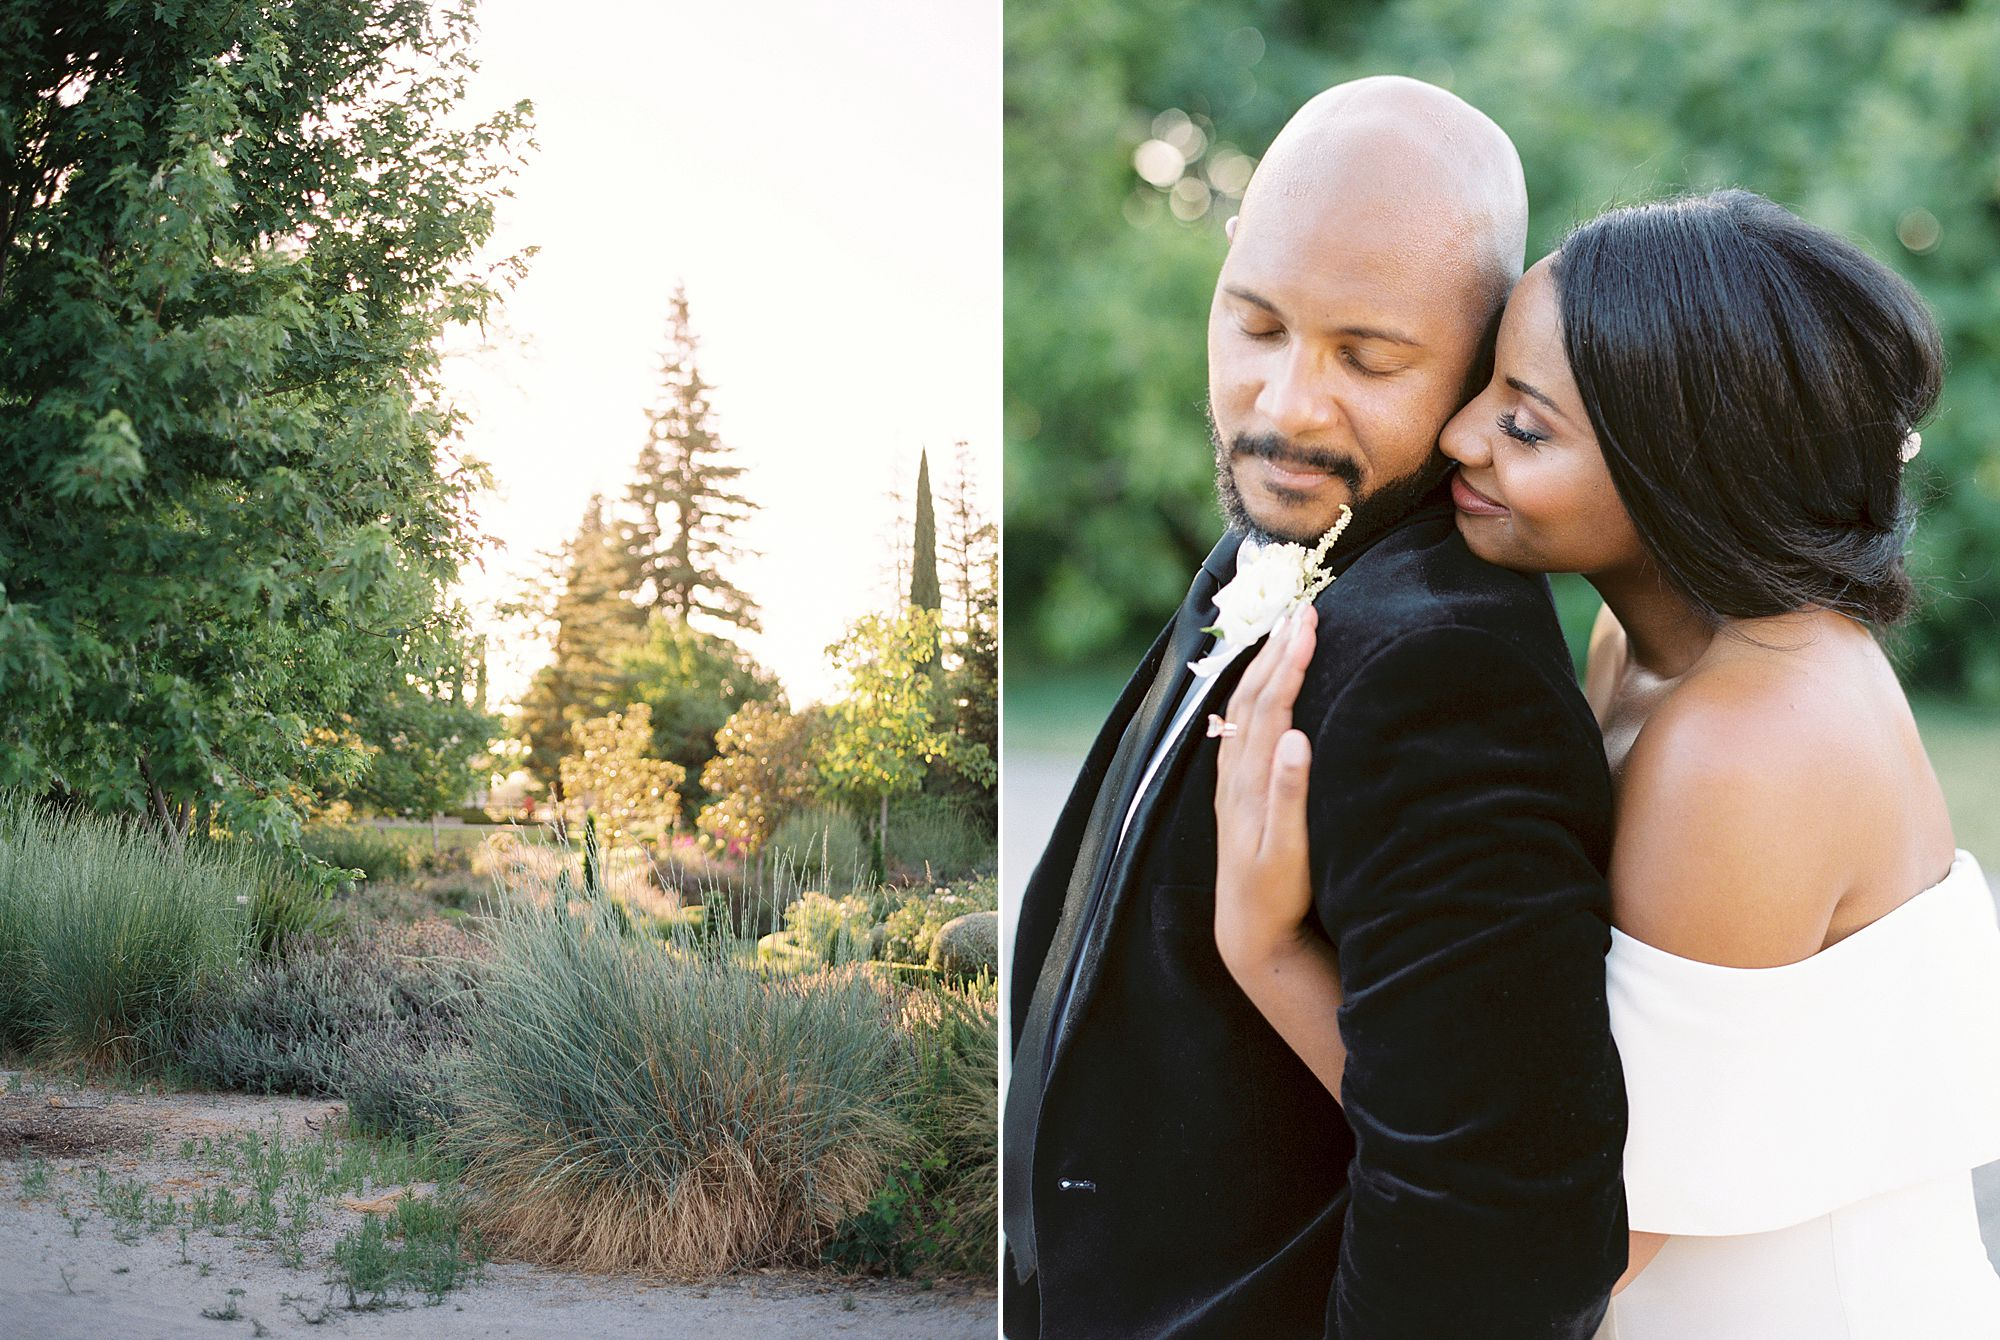 Park Winters Micro-Wedding Inspiration on Style Me Pretty - Stephanie Teague Events - Ashley Baumgartner - Park Winters Wedding - Black Tie Wedding - Micro-Wedding Sacramento Photographer_0039.jpg